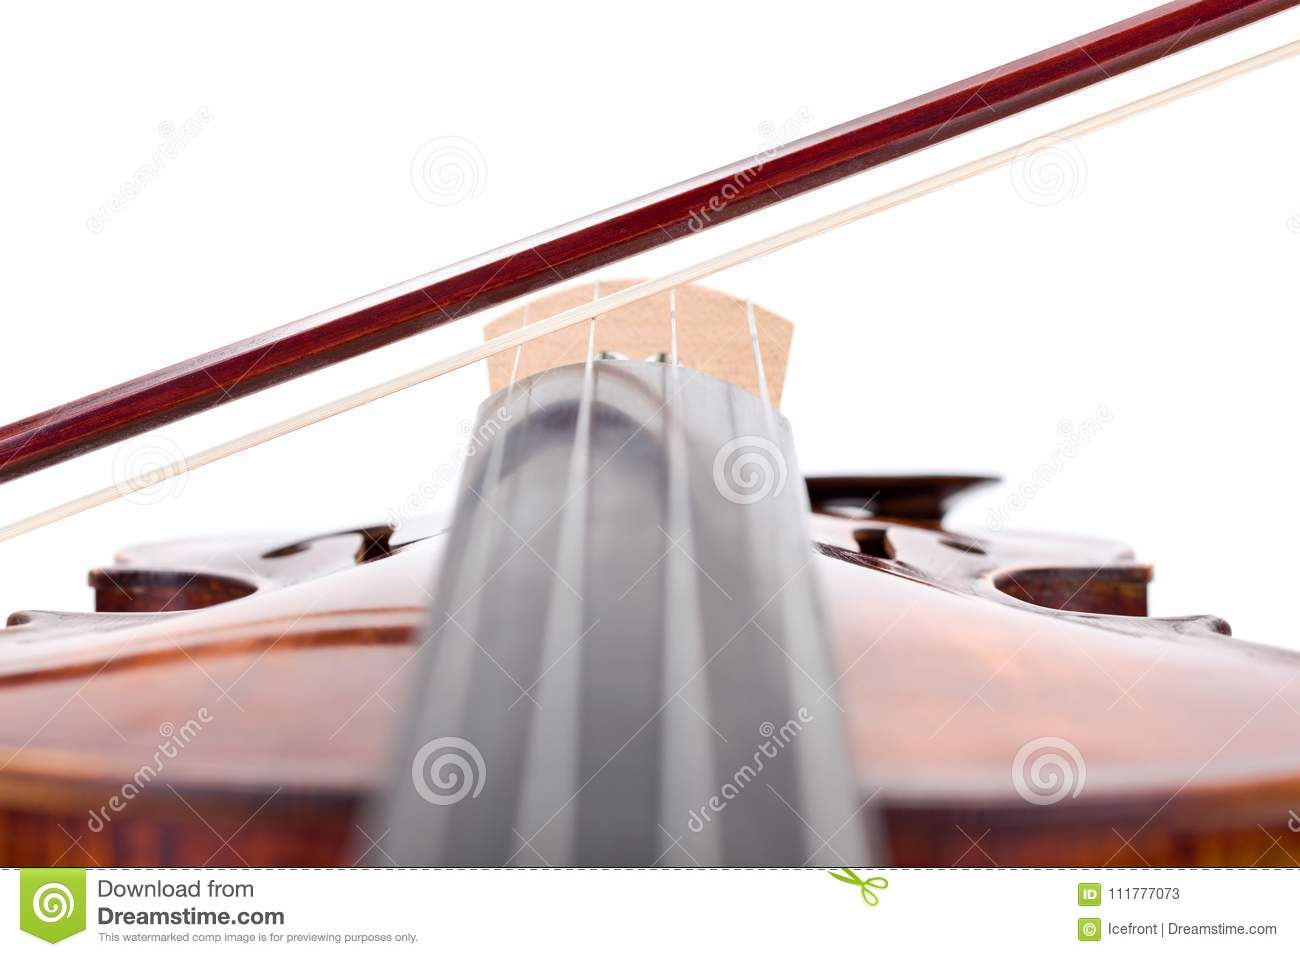 Close view of a violin bow on strings